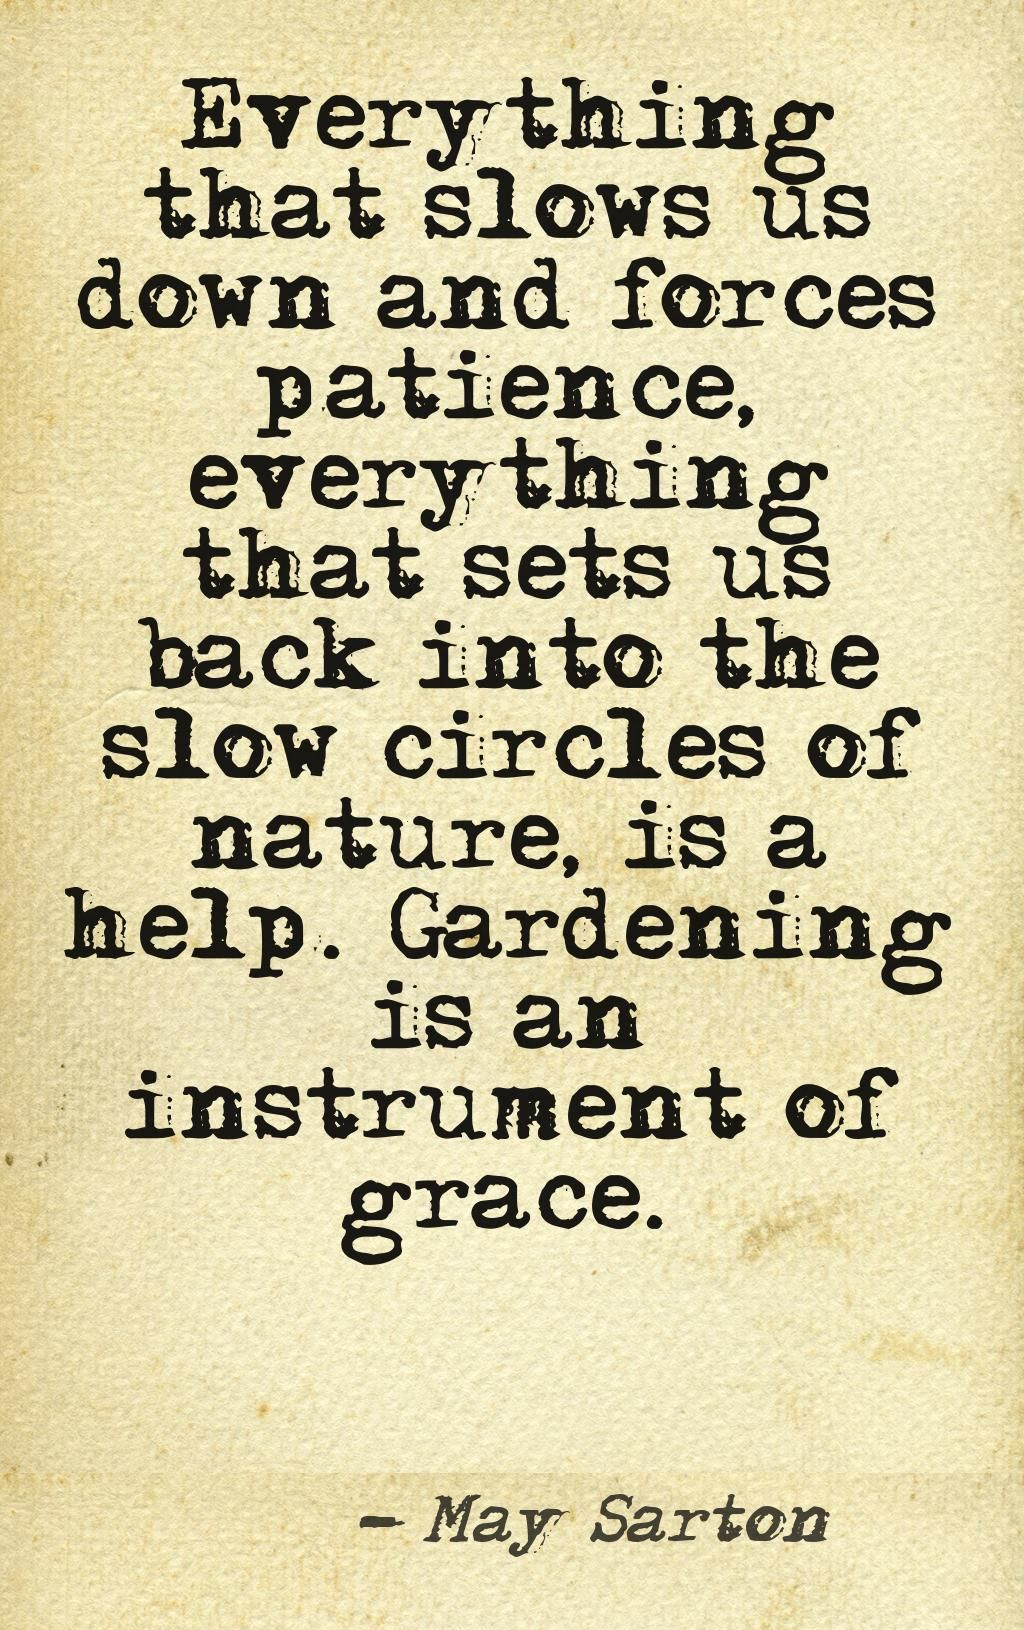 Gardening Quotes to Brighten Your Day is part of Garden quotes, Garden inspiration, Garden, Garden signs, Dream garden, Beautiful gardens - Many gardening quotes reflect deep affinity people have for this activity  Whether they are funny or inspirational, these quotes will brighten your heart